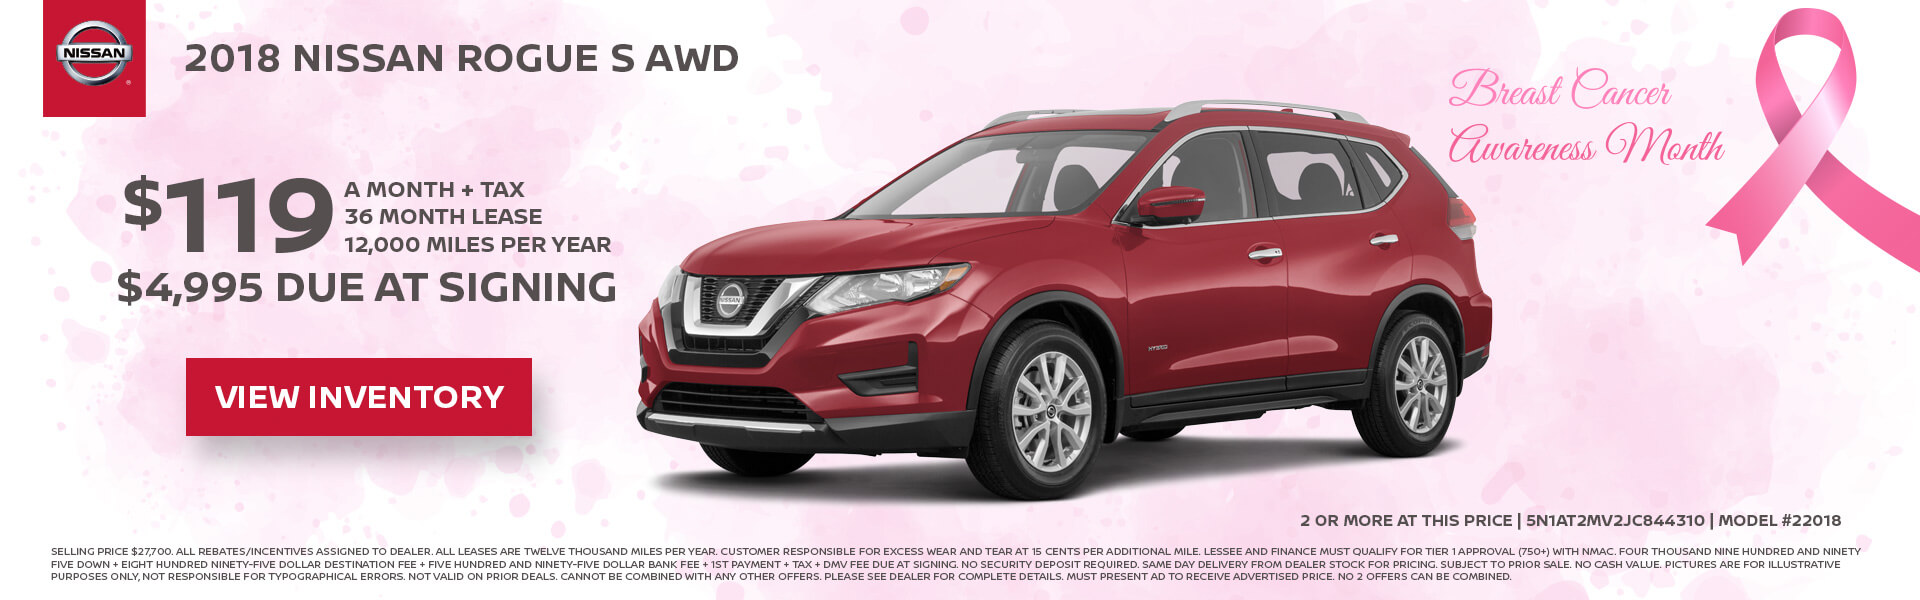 High Quality Nissan Rogue $119 Lease